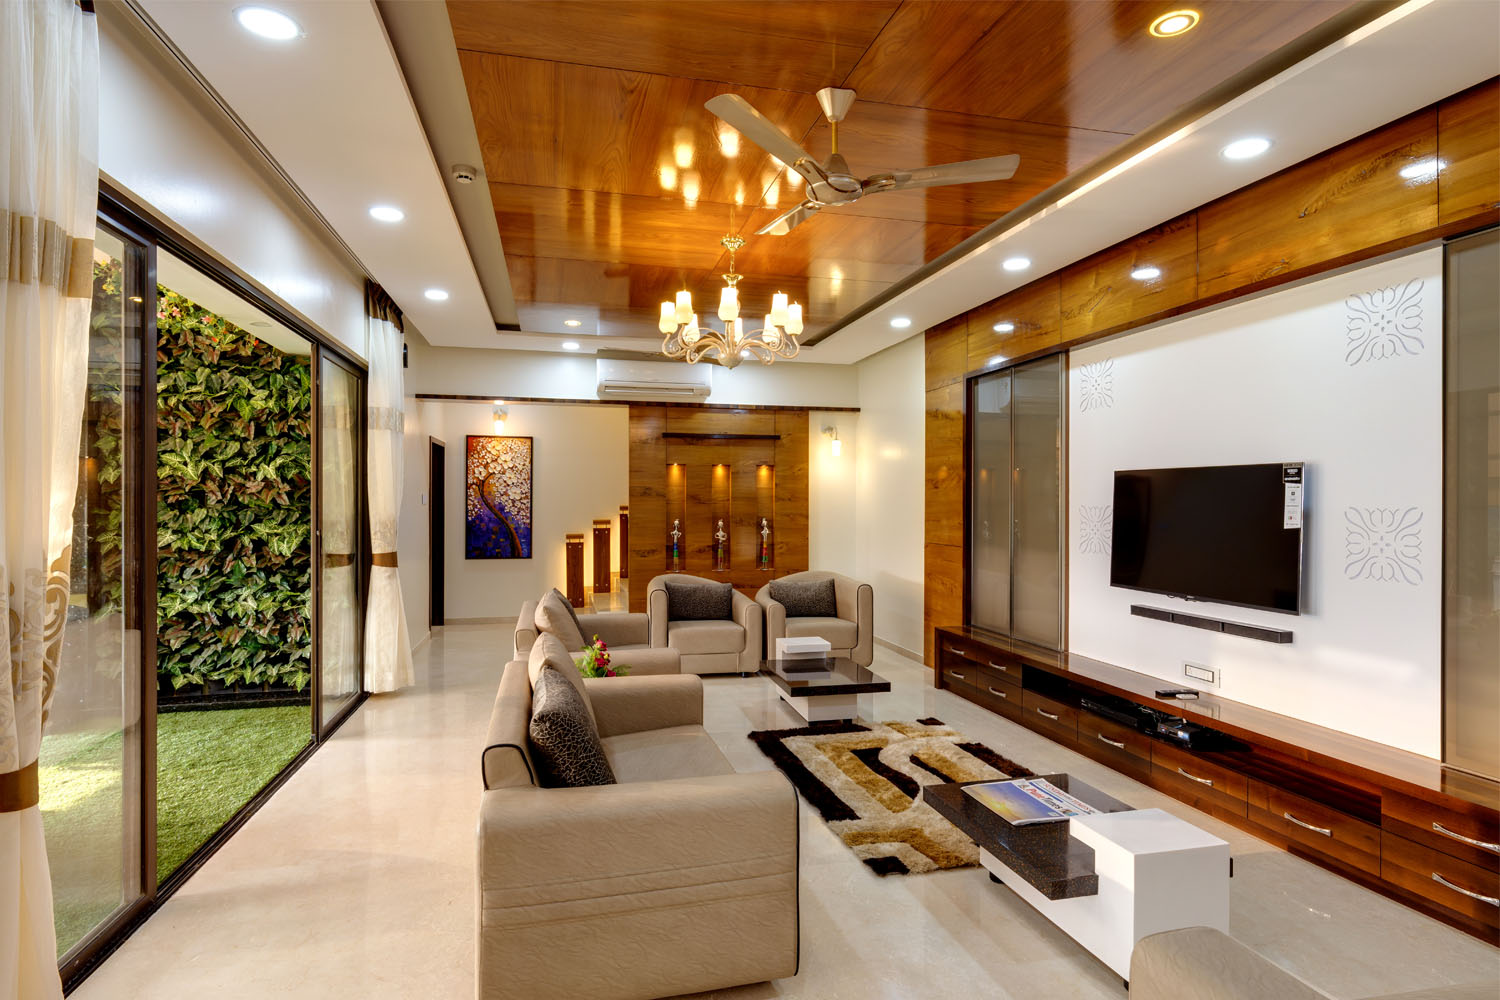 Best interior designer pune nerlekar interior designing for Interior design